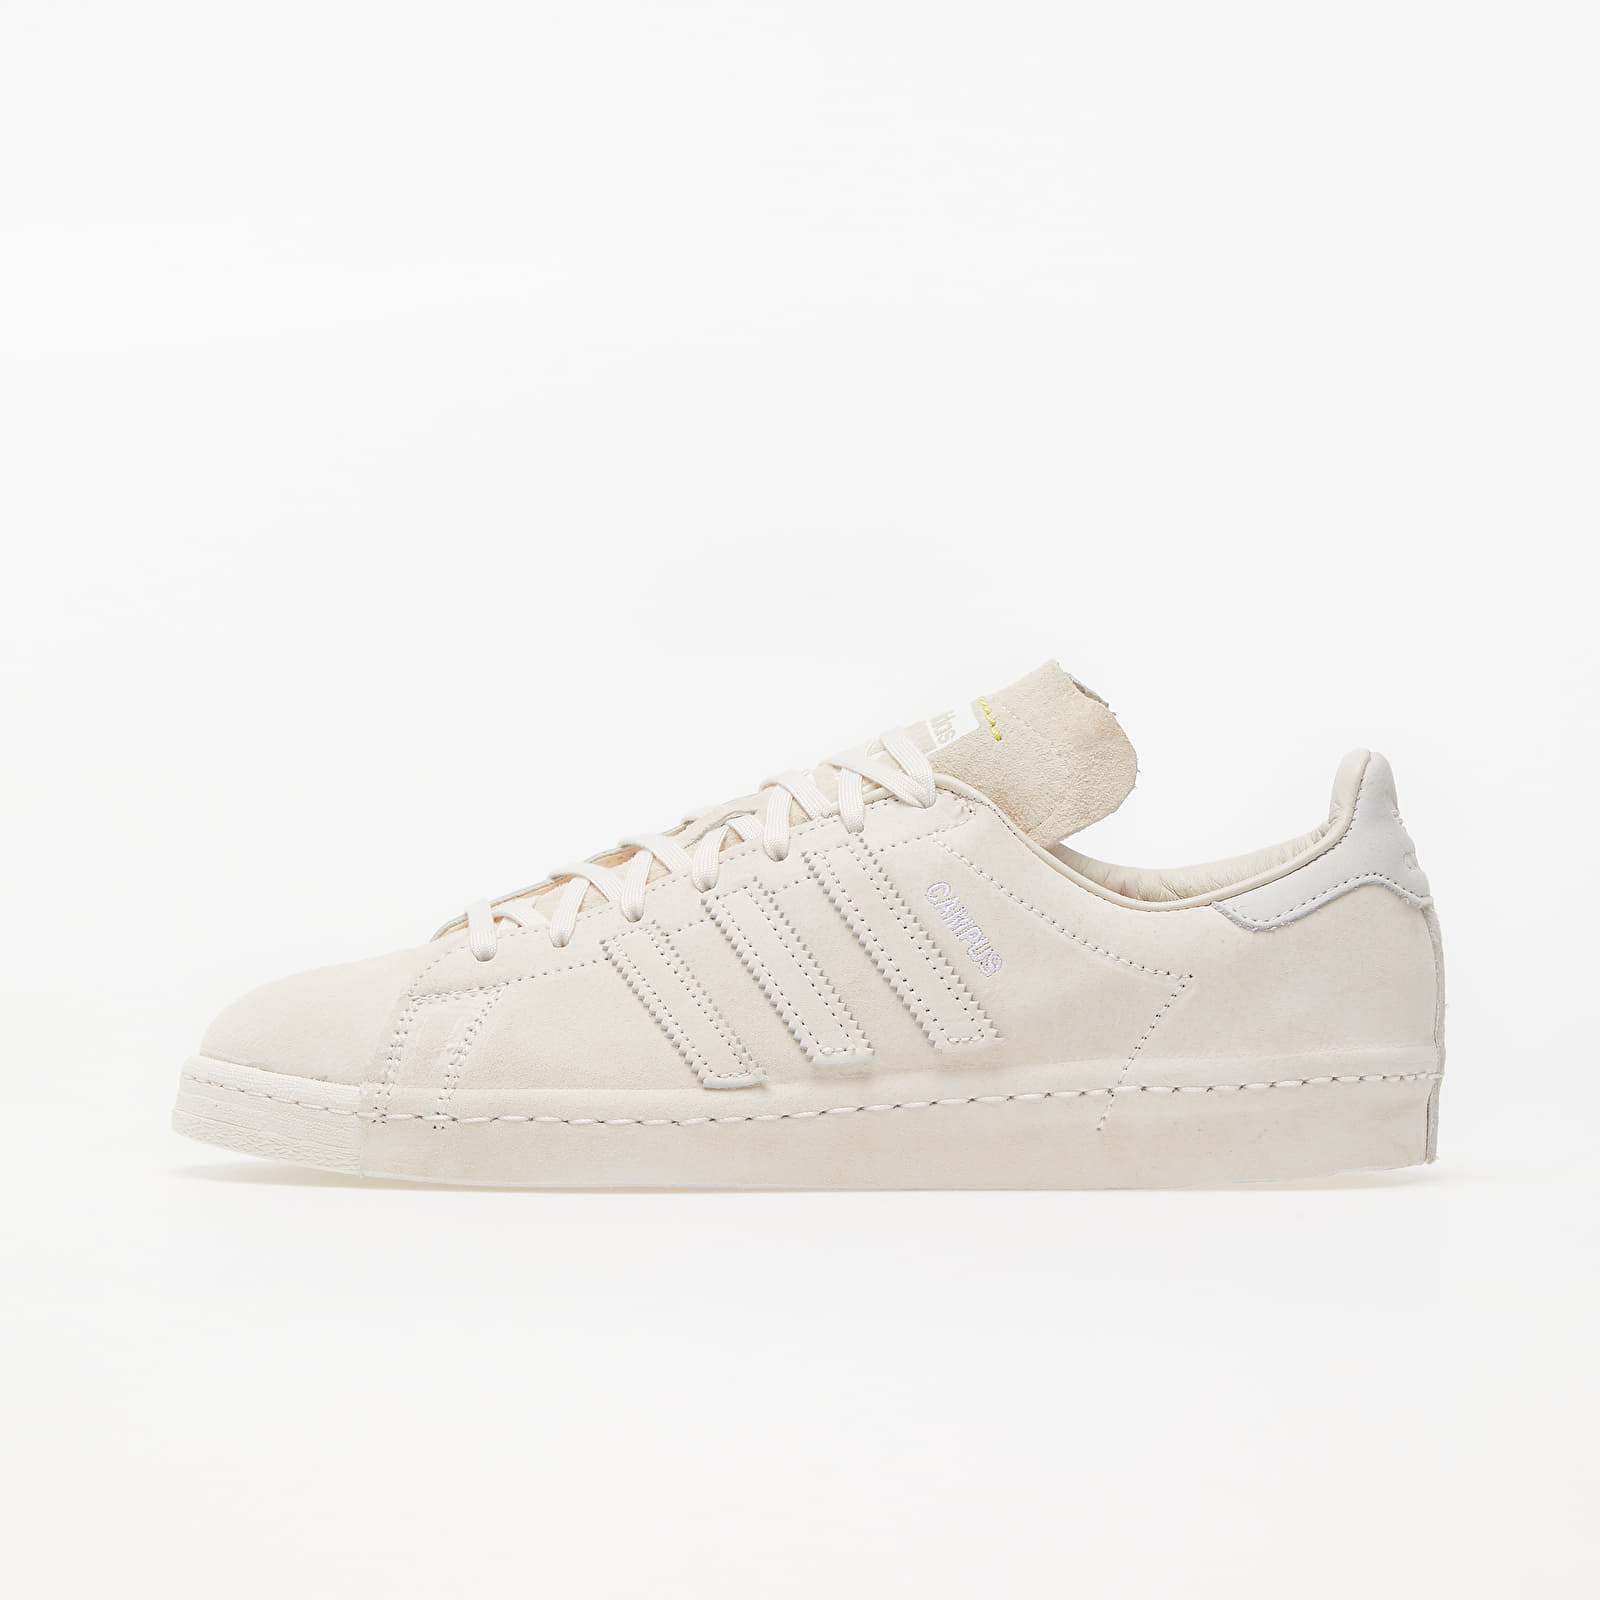 adidas Consortium x Recouture Campus 80S SH Chalk White/ Dark Blue/ Core Black EUR 38